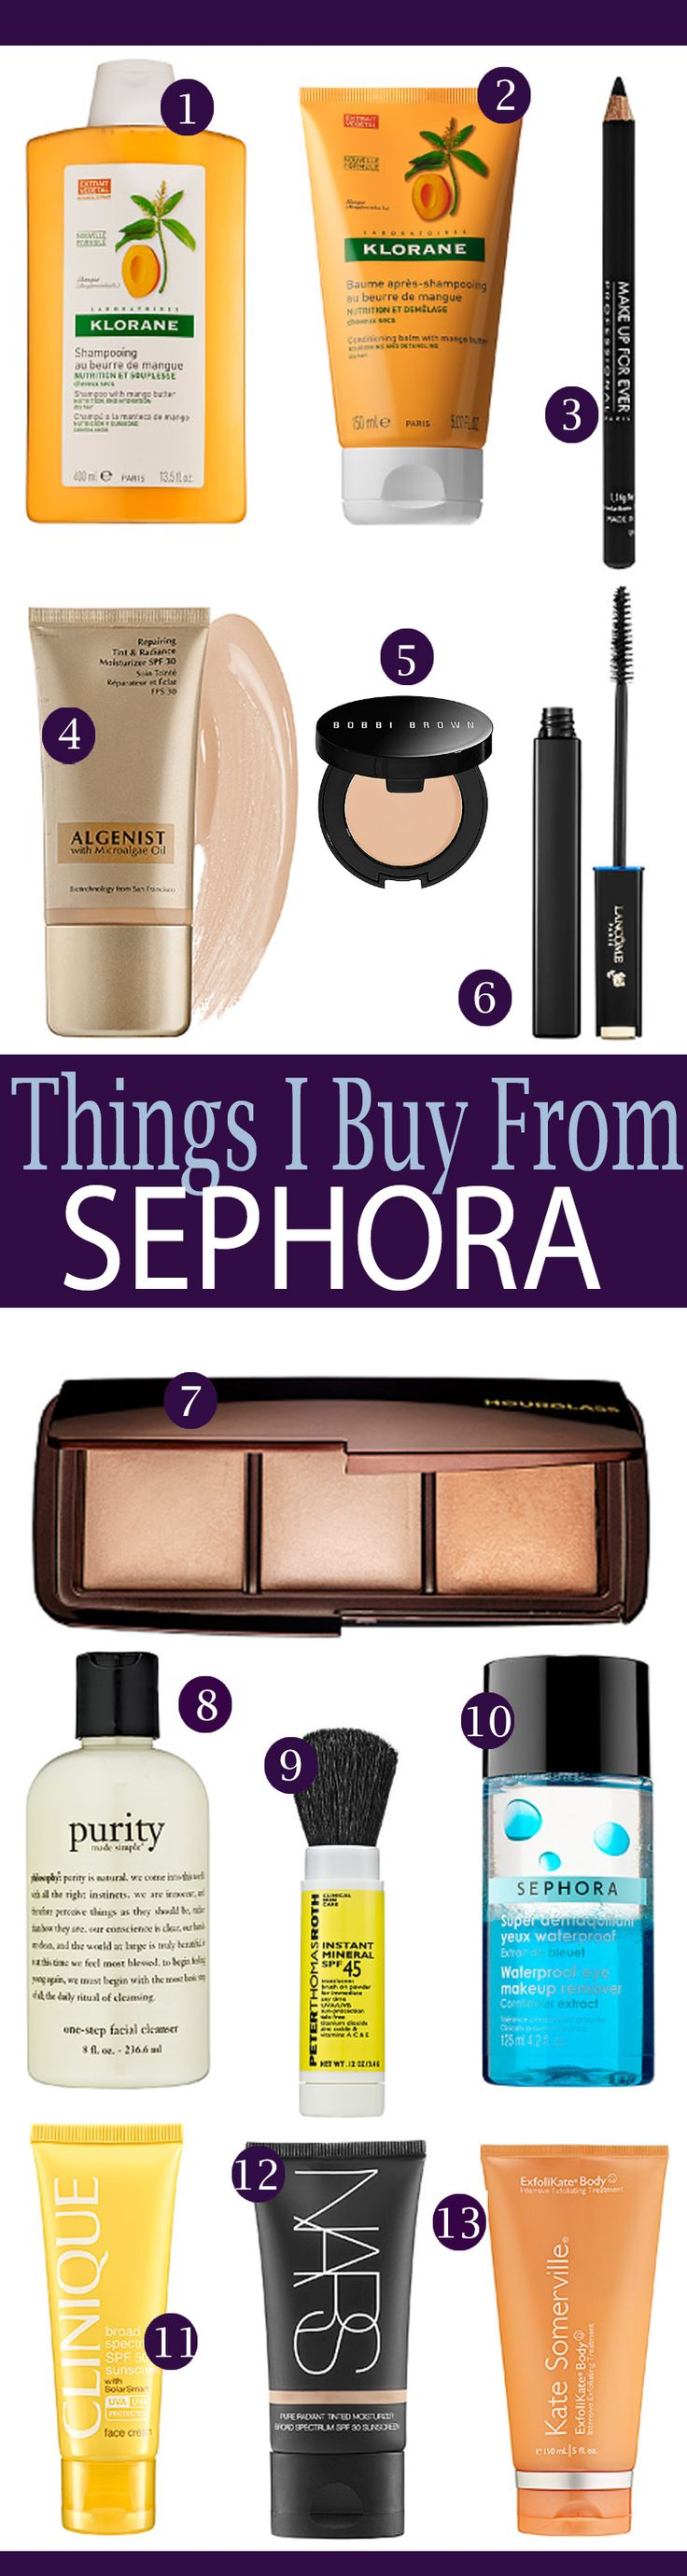 Things I buy from Sephora over and over!